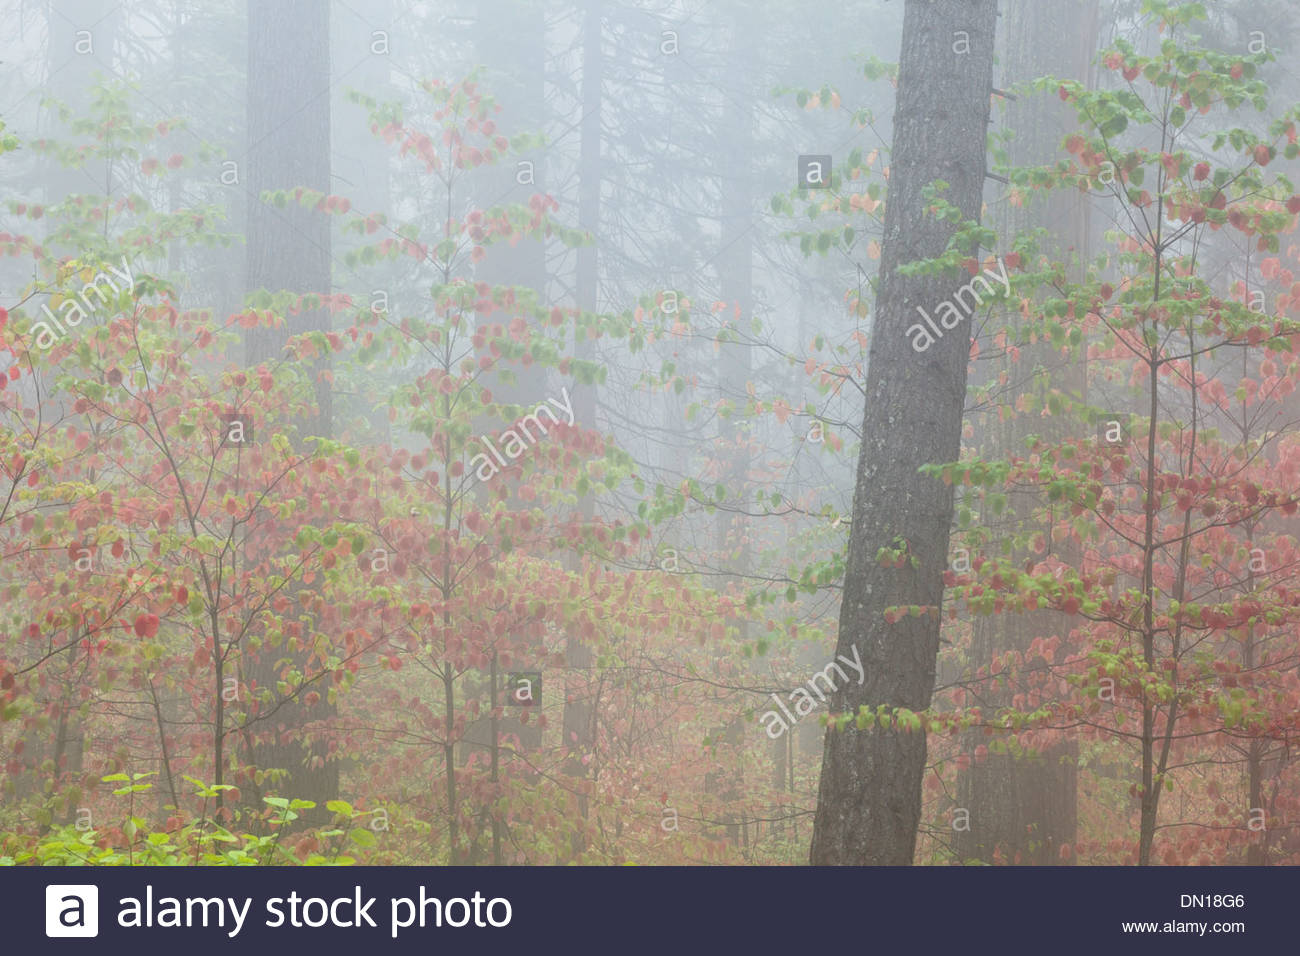 Dogwood Fall Foliage in Fog, Calaveras Big Trees State Park, California - Stock Image